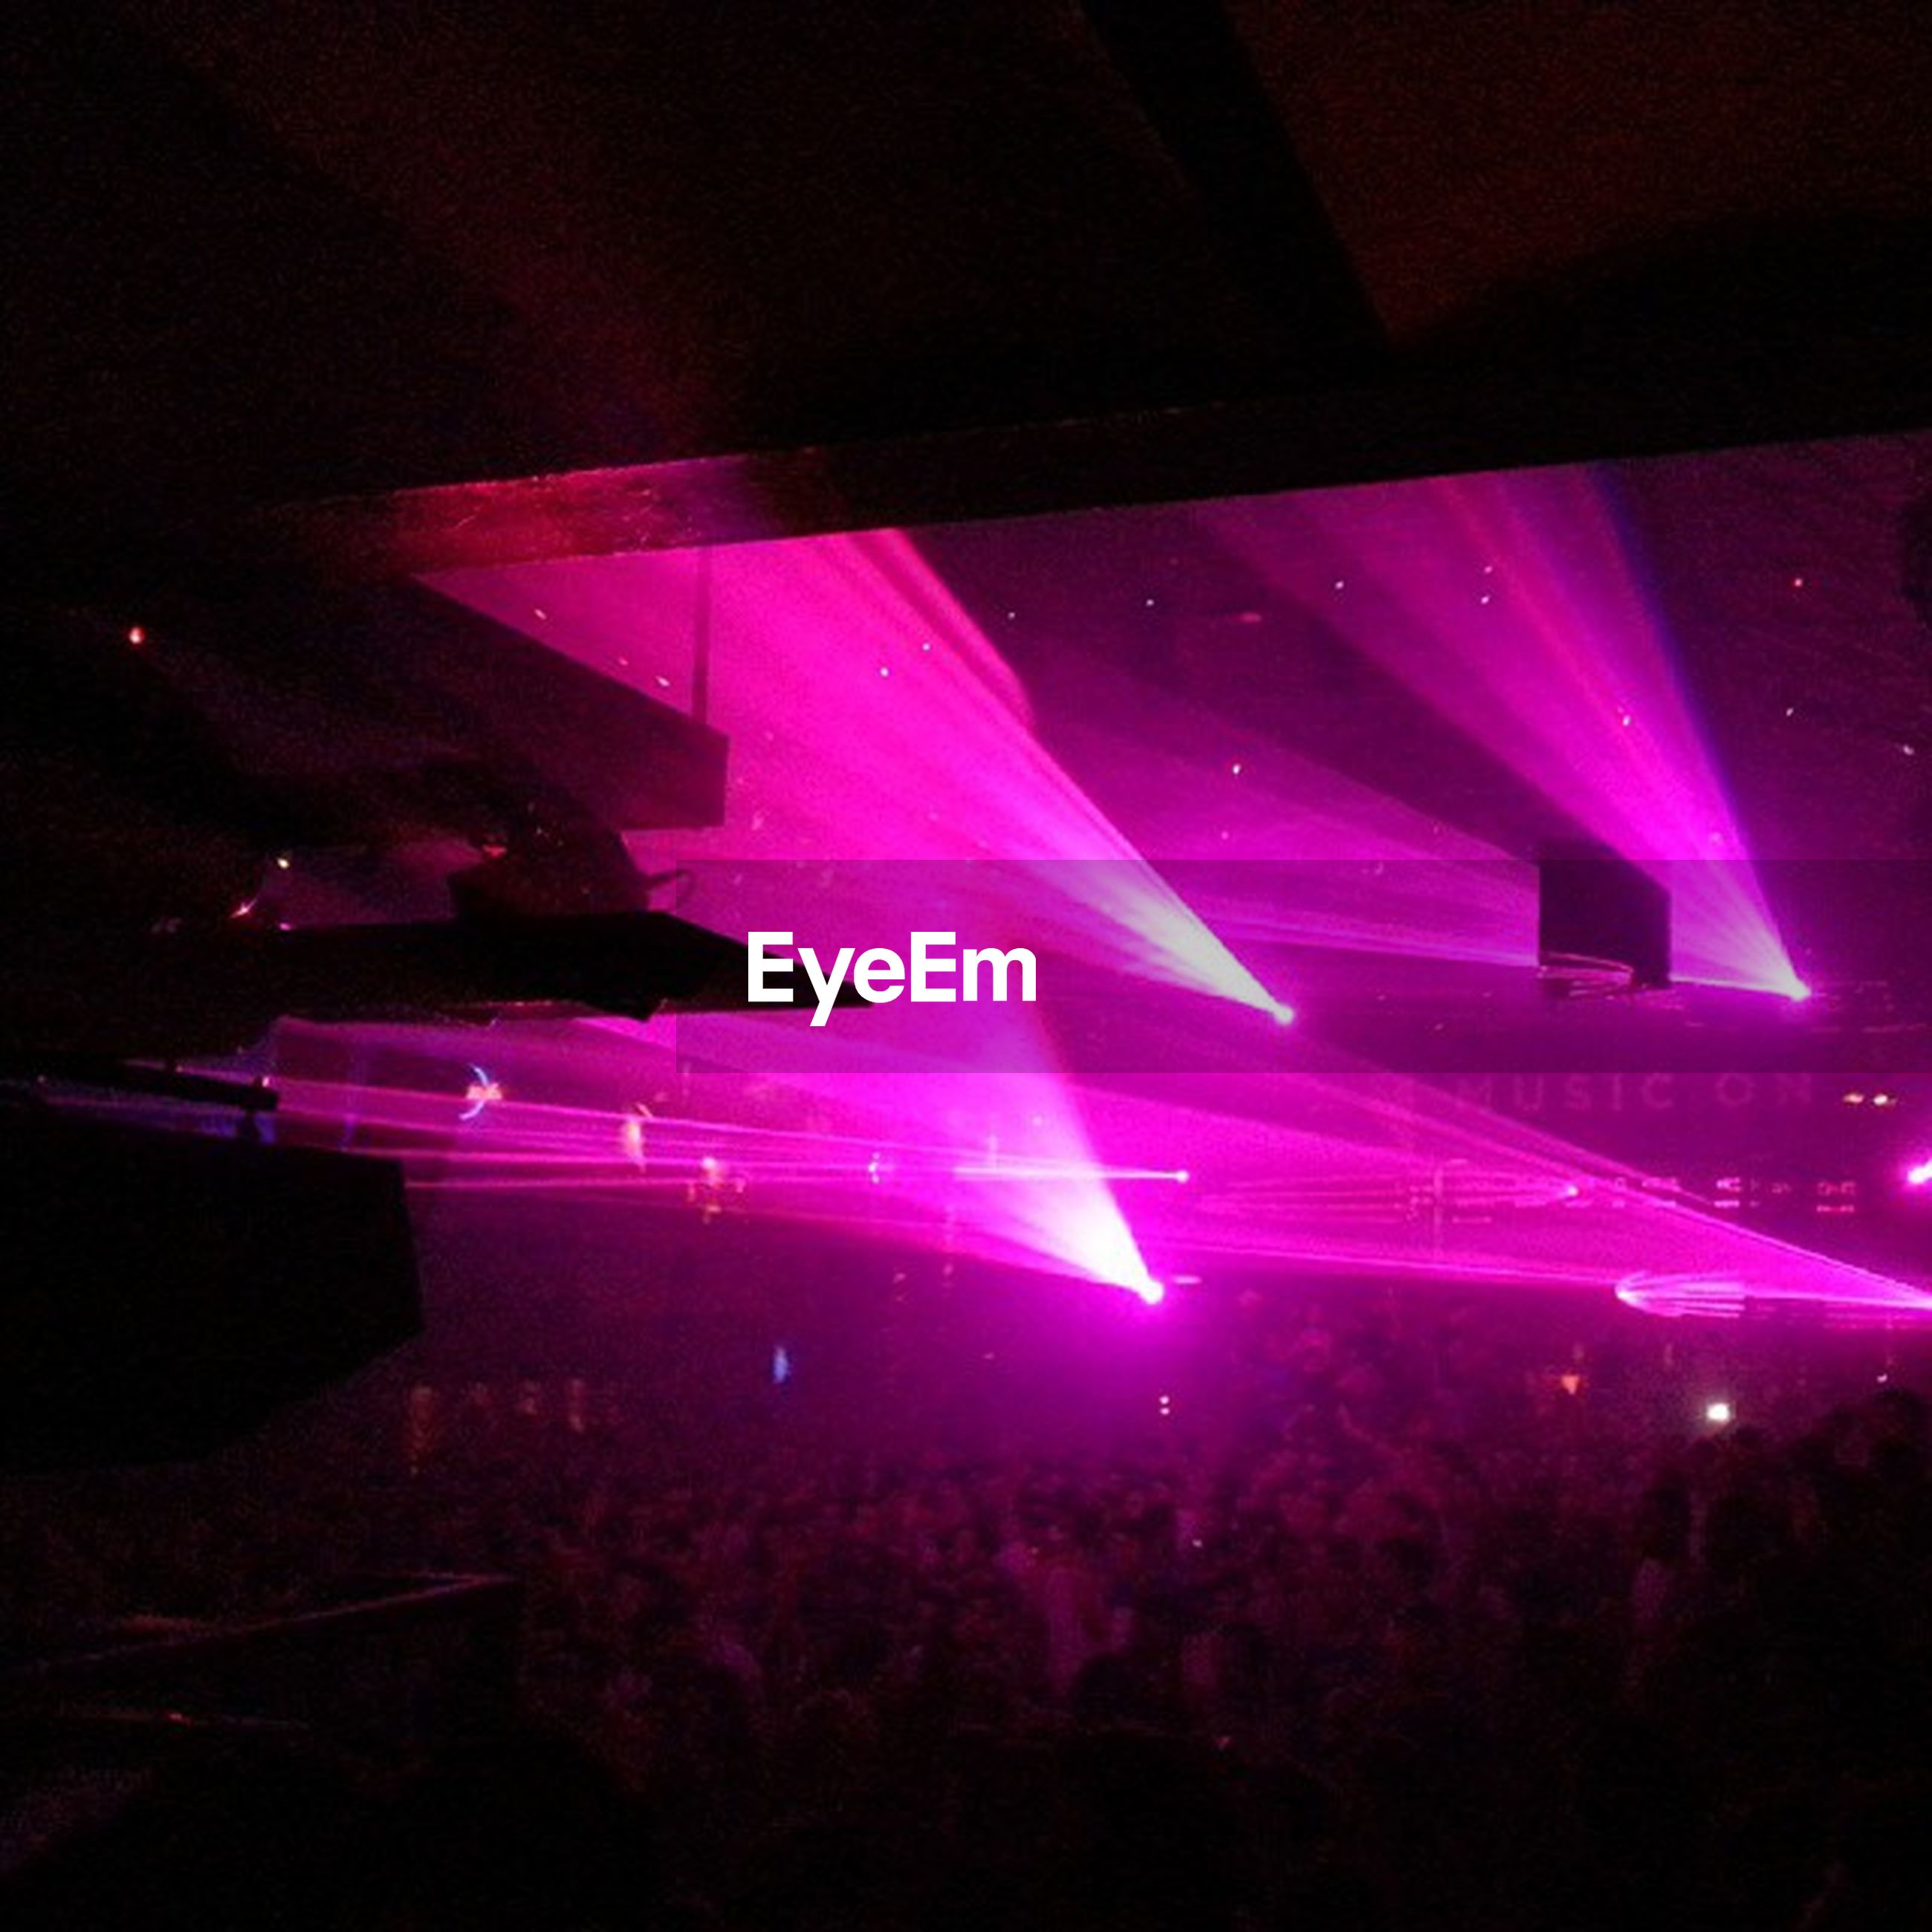 illuminated, night, nightlife, light - natural phenomenon, arts culture and entertainment, large group of people, event, crowd, lighting equipment, glowing, light beam, nightclub, celebration, music, dark, person, multi colored, light, enjoyment, indoors